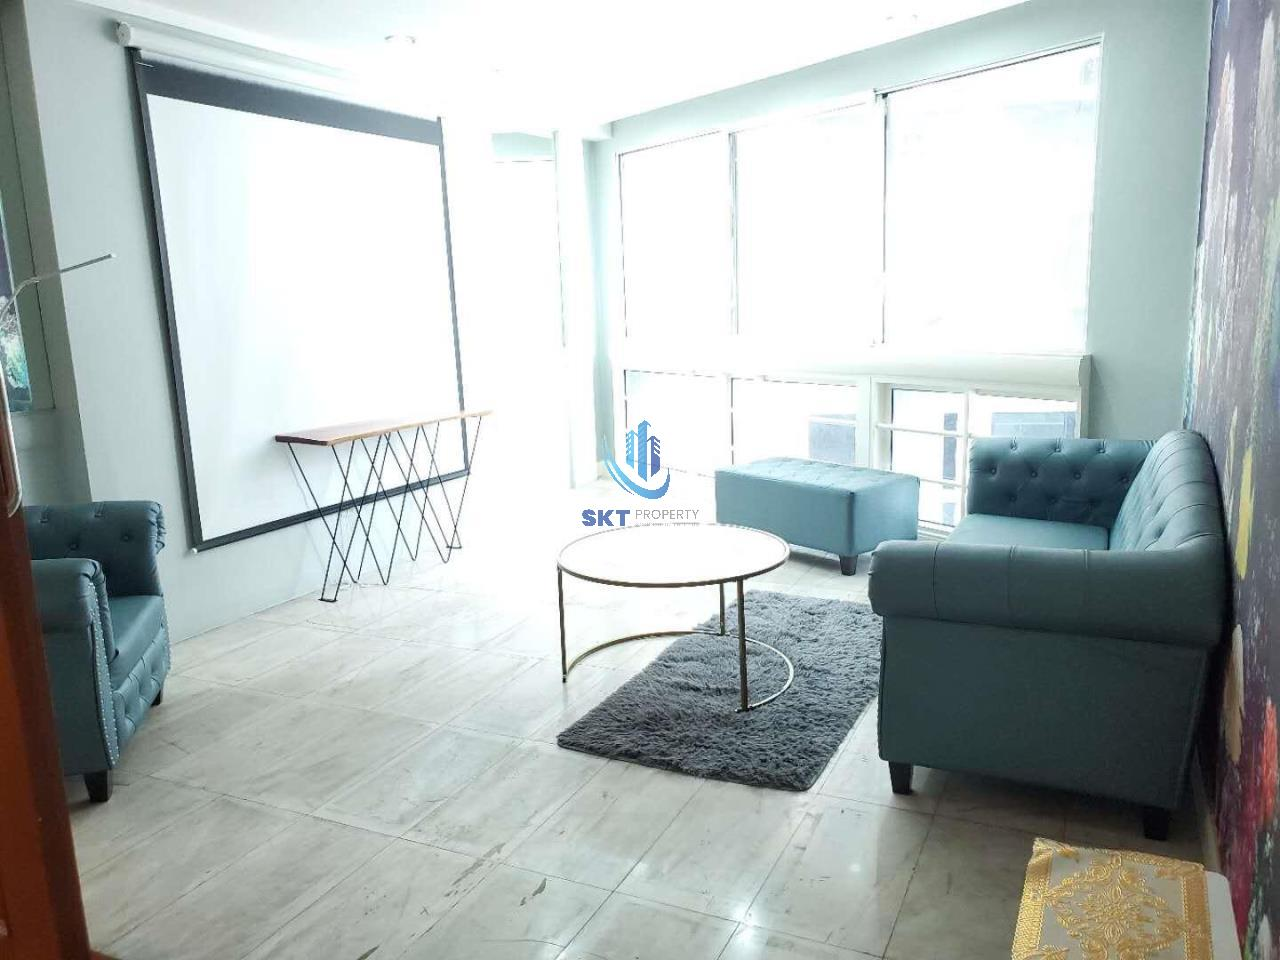 Sukritta Property Agency's  Apartment - BTS Phrom Phrong 1